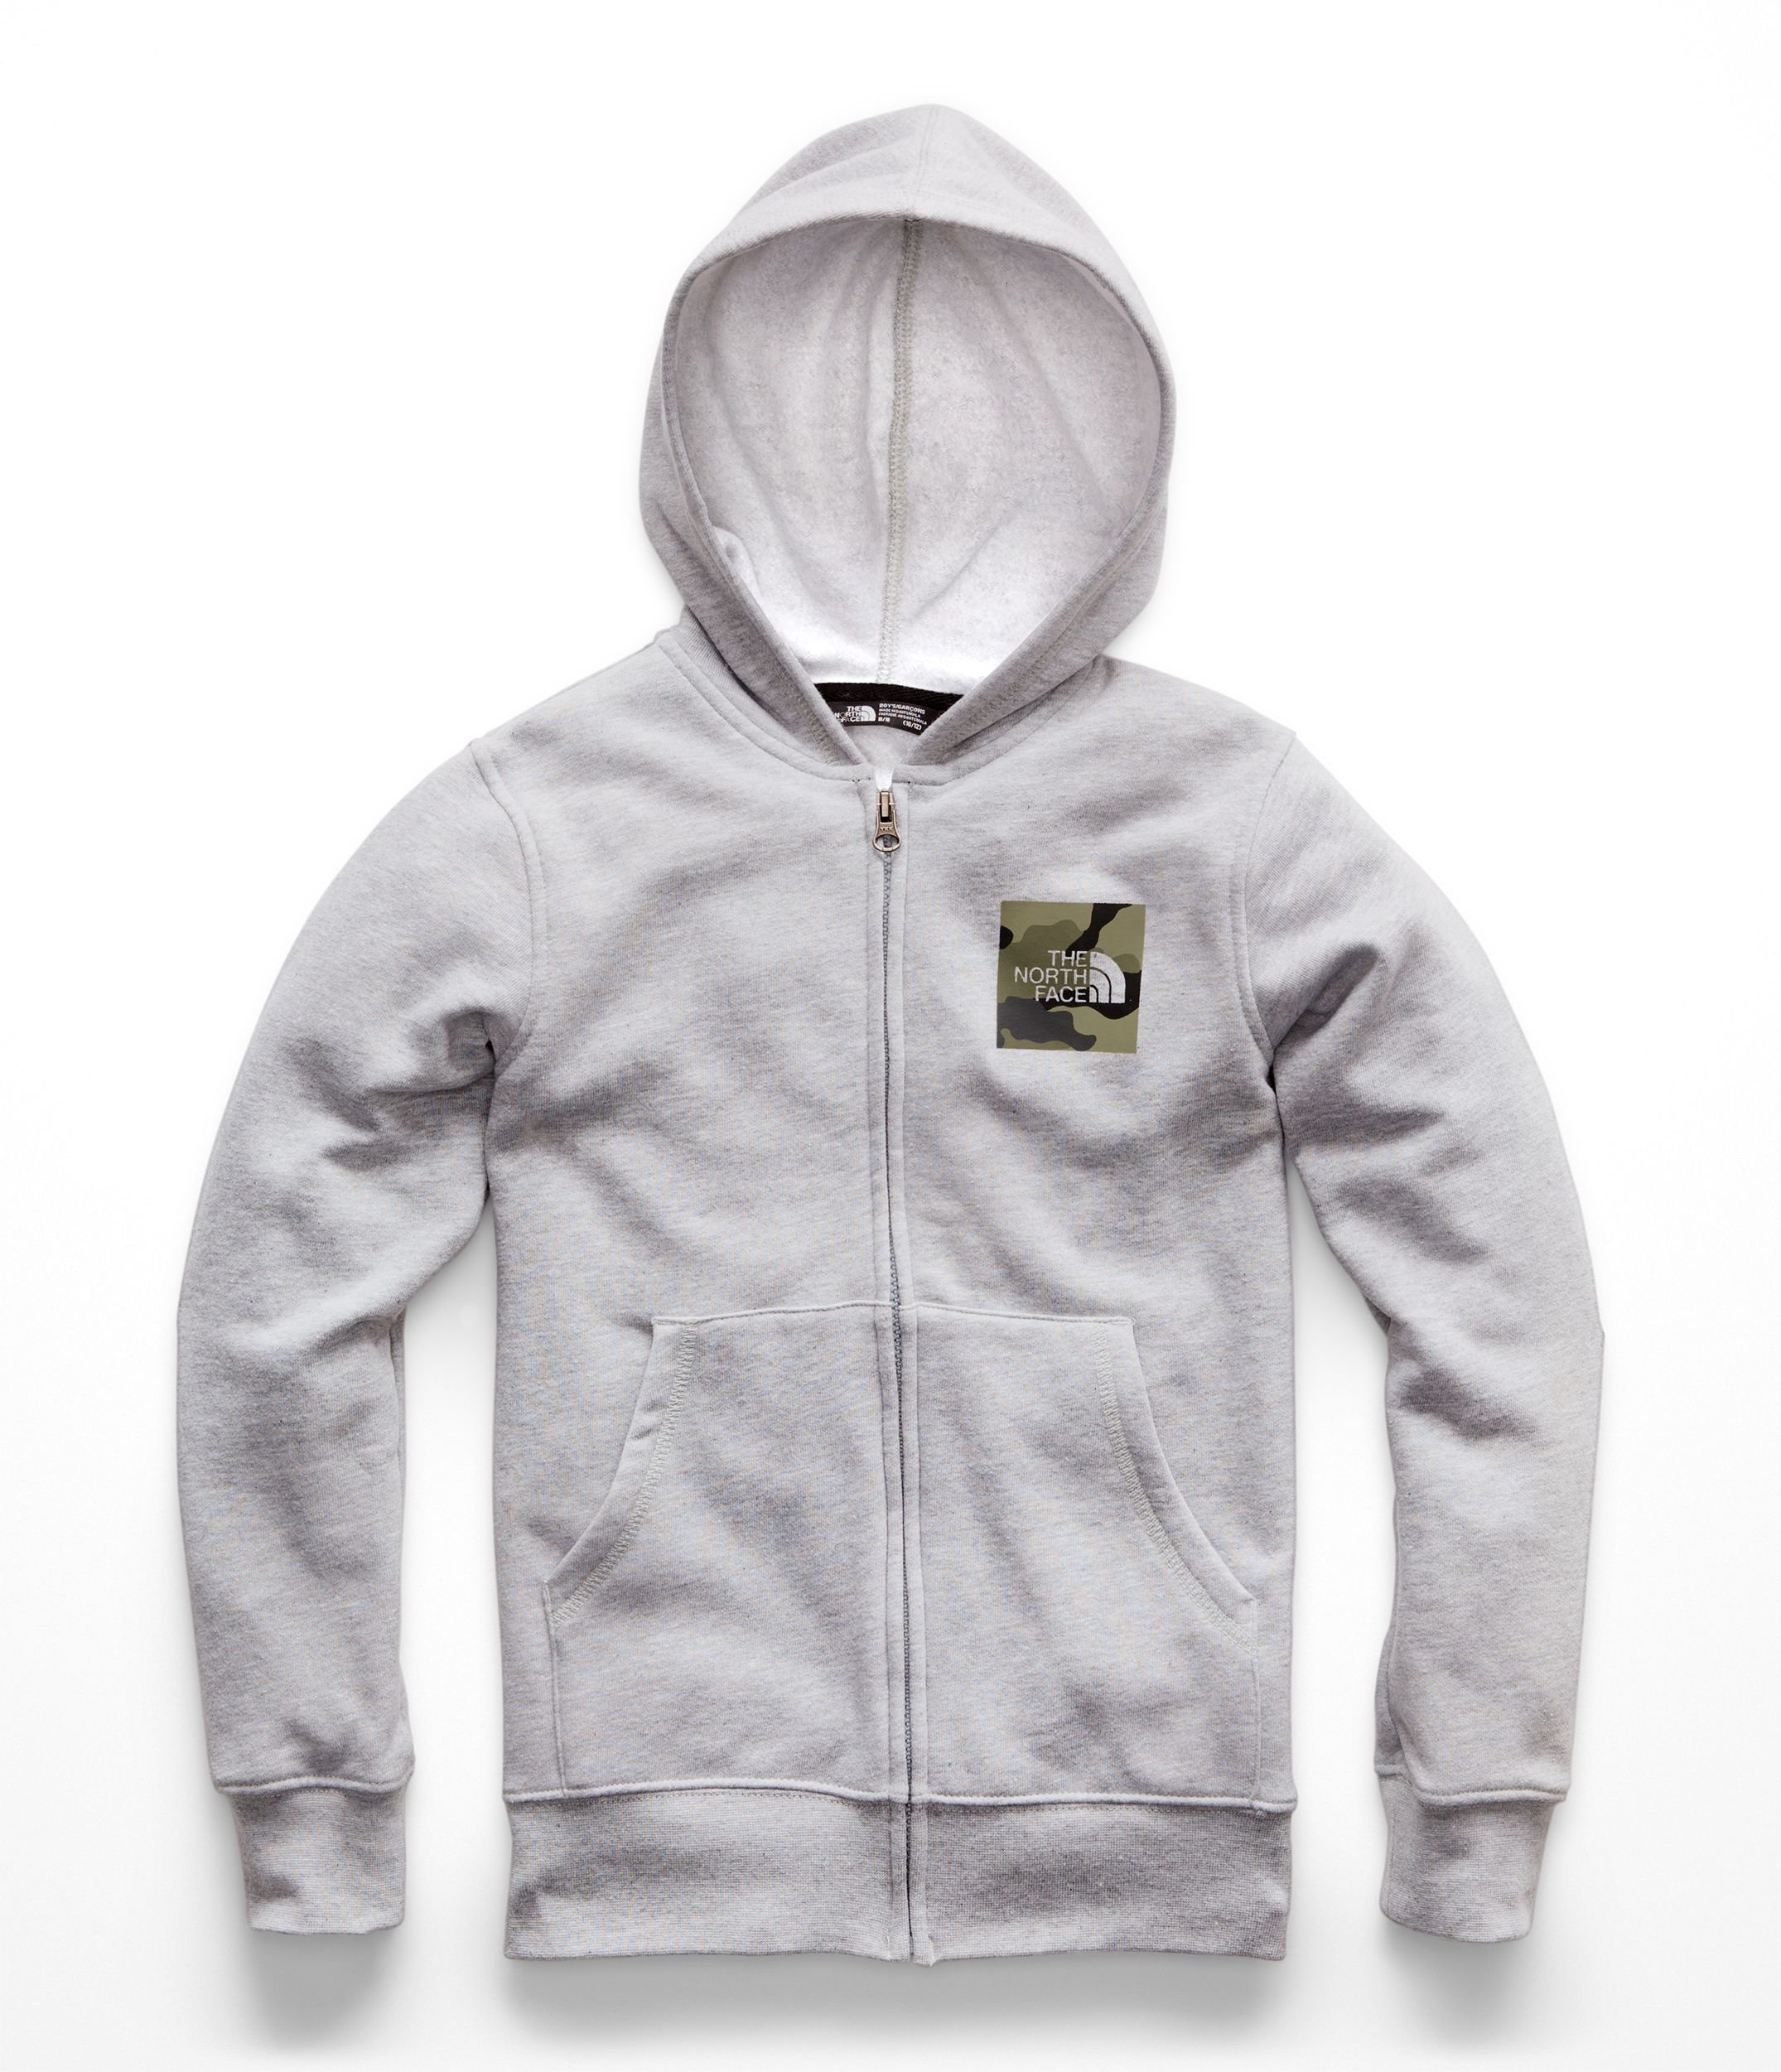 The North Face Boys Logowear Full Zip Hoodie - TNF Light Grey Heather & New Taupe Green - S